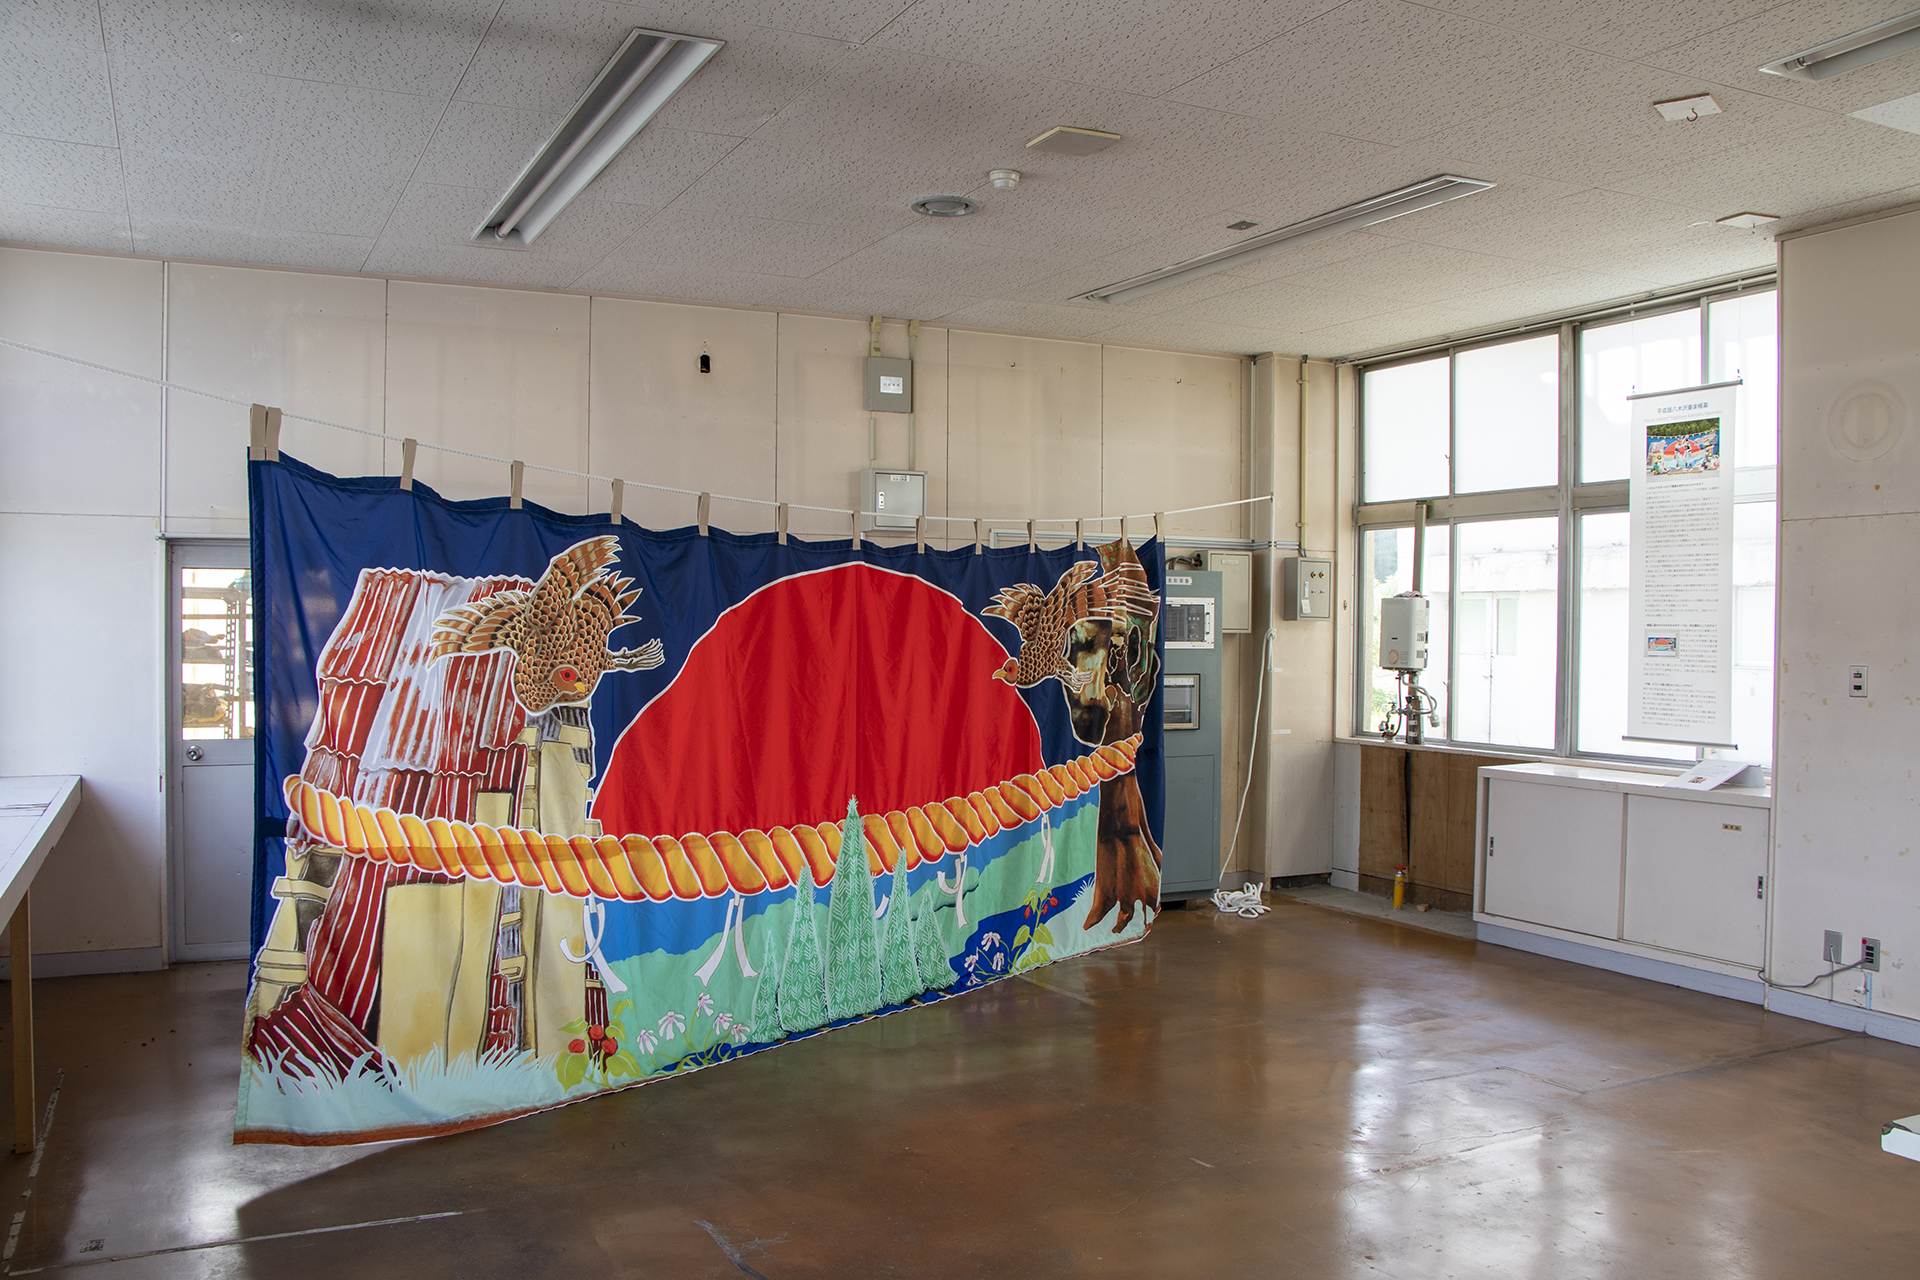 Info-Exhibition of Kamikoani Project